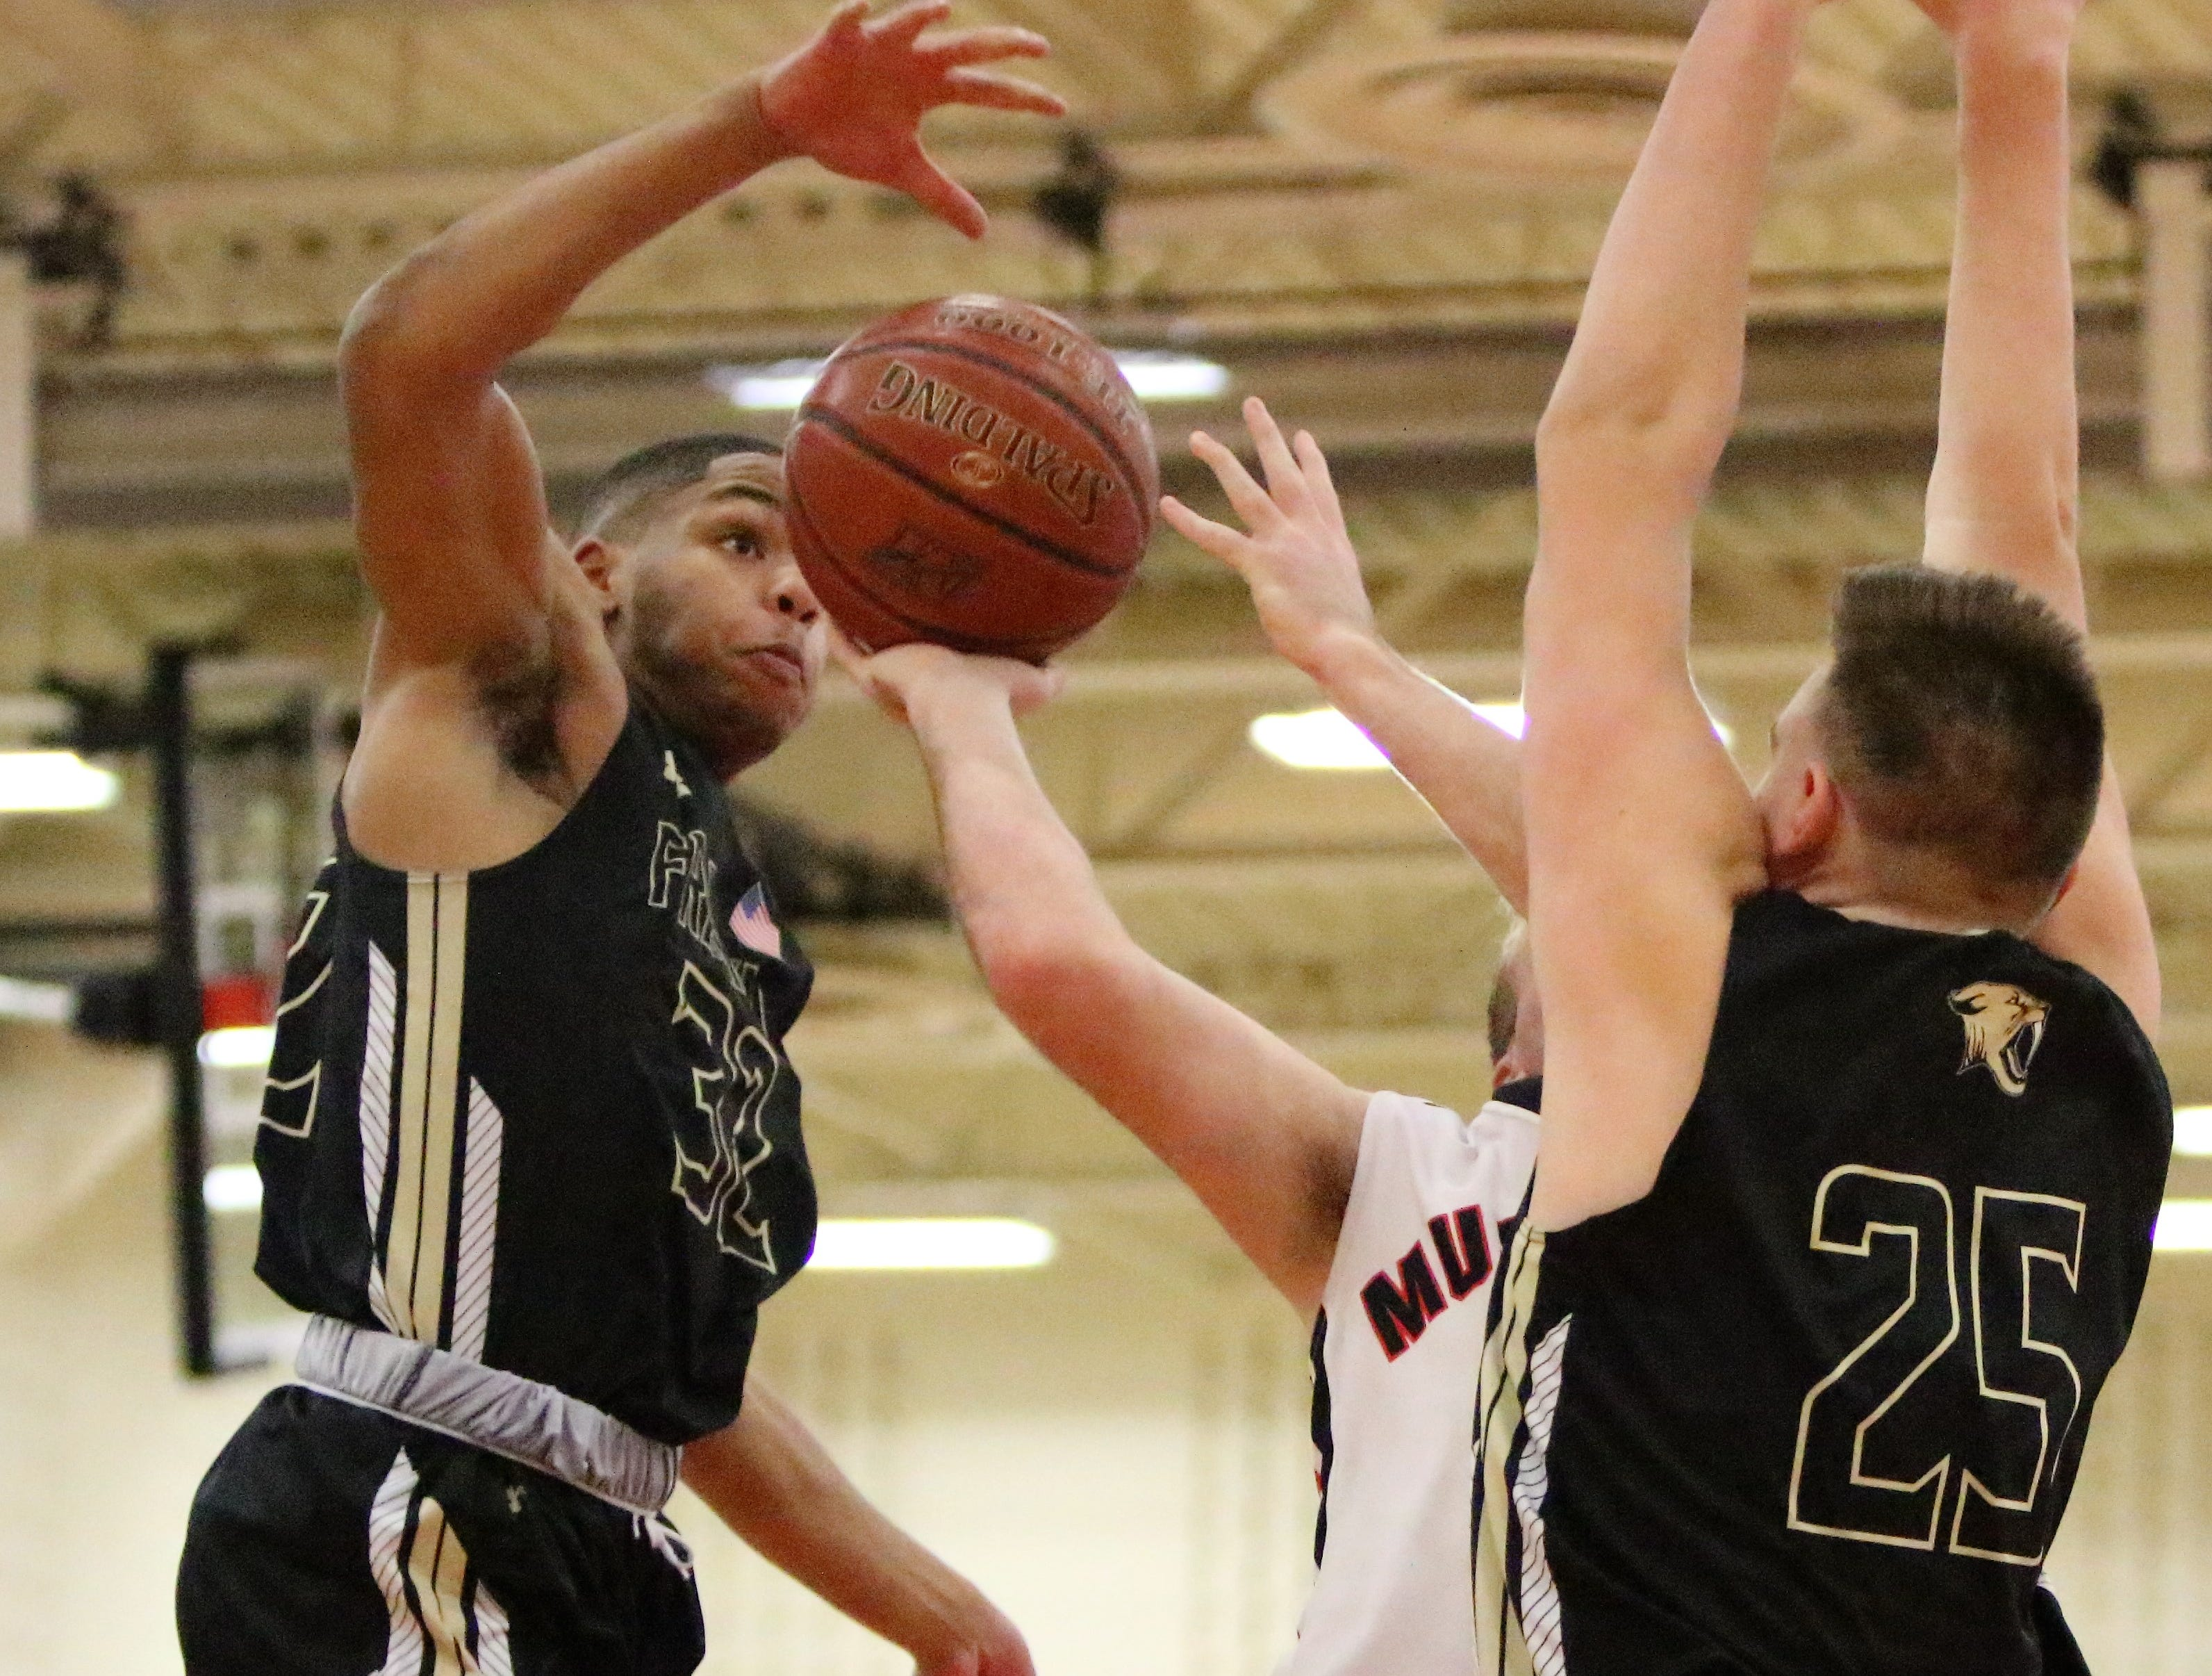 Franklin guard Ron Wilson (left) goes up to block a shot against Muskego on Feb. 11, 2019.